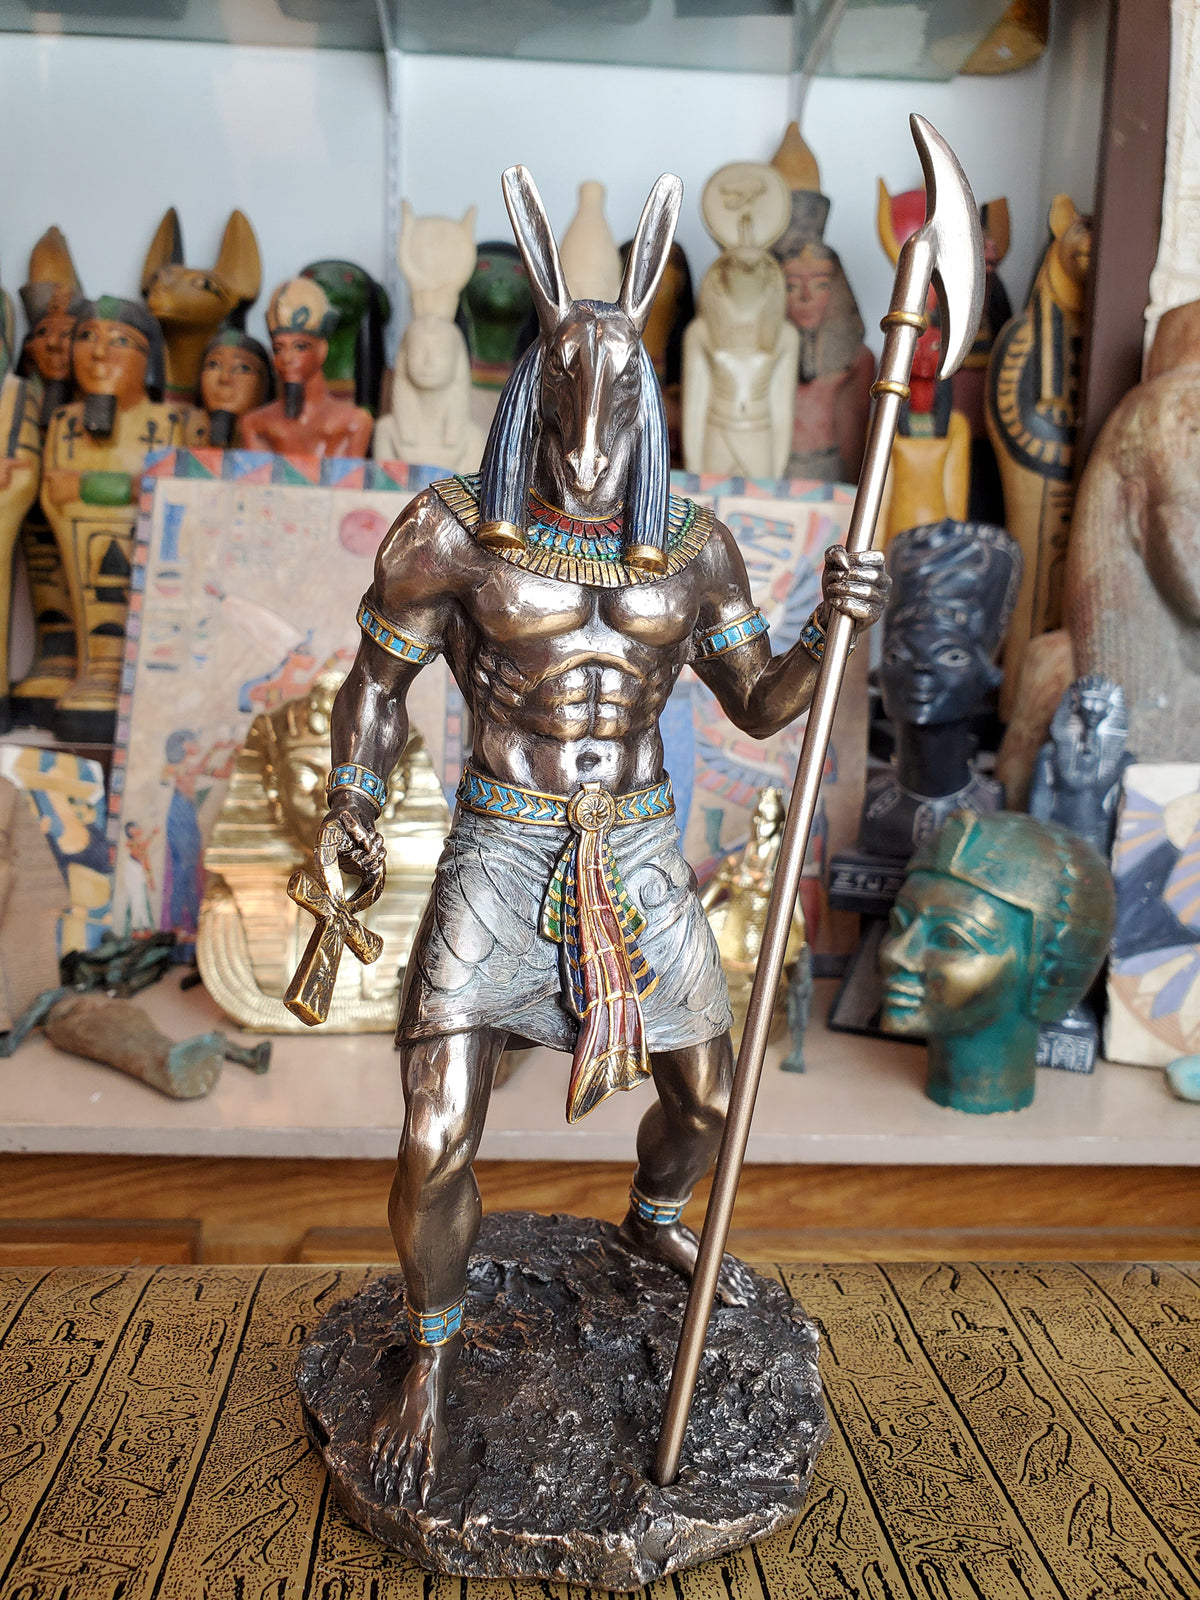 Set/Seth Statue - Egyptian God of Chaos Seth holding Was Sceptre